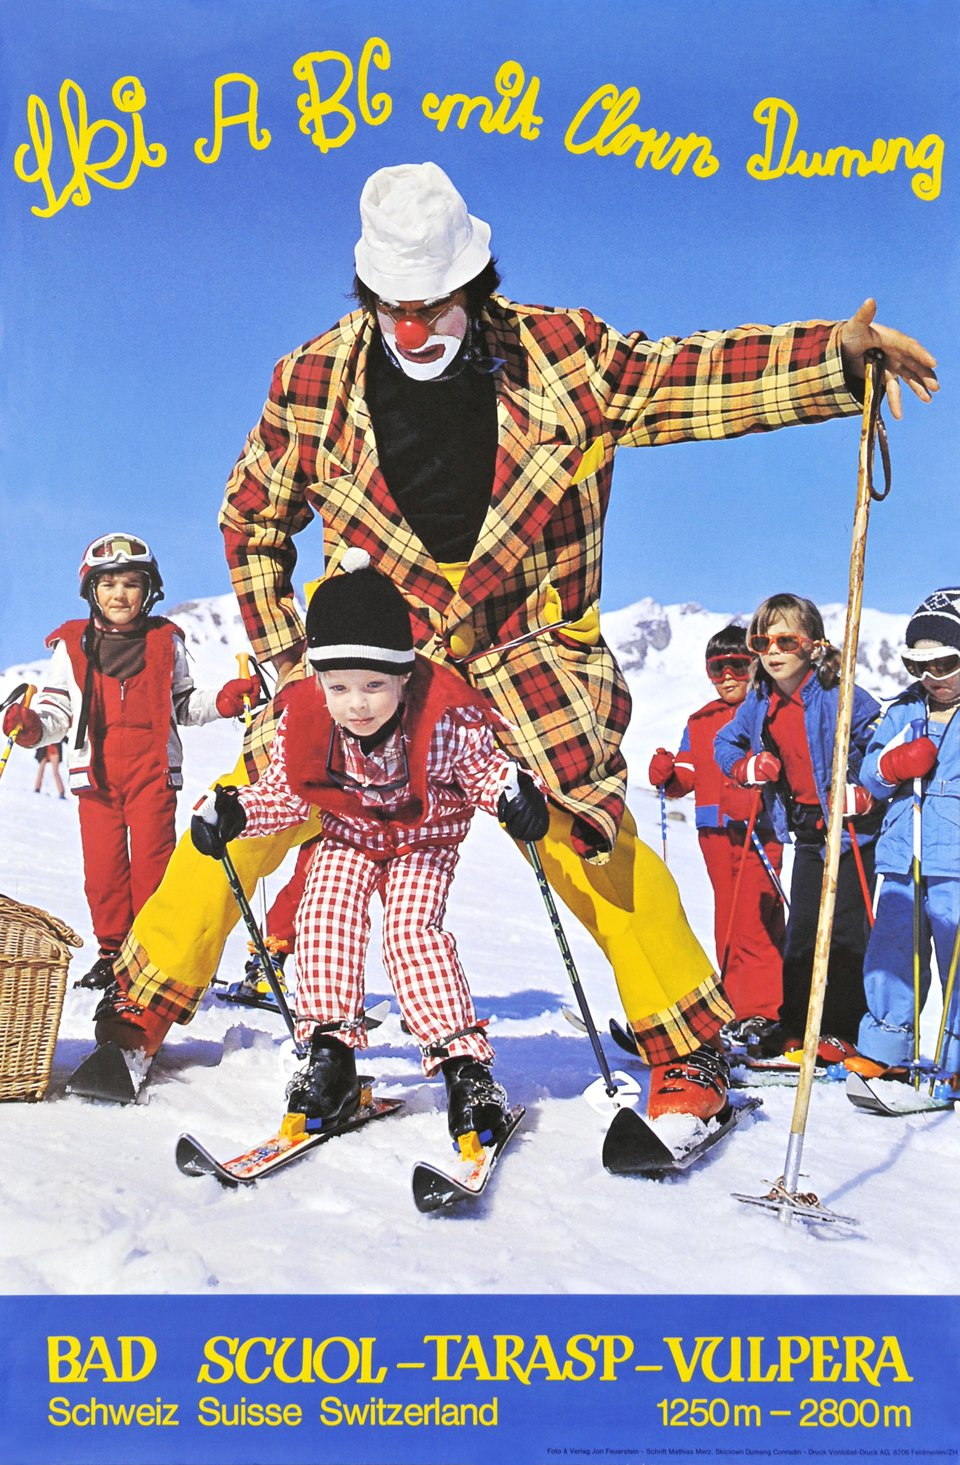 Ski ABC mit clown Dumeng - Bad, Scuol - Tarasp - Vulpera – Affiche ancienne – Jen FEUERSTEIN – 1980